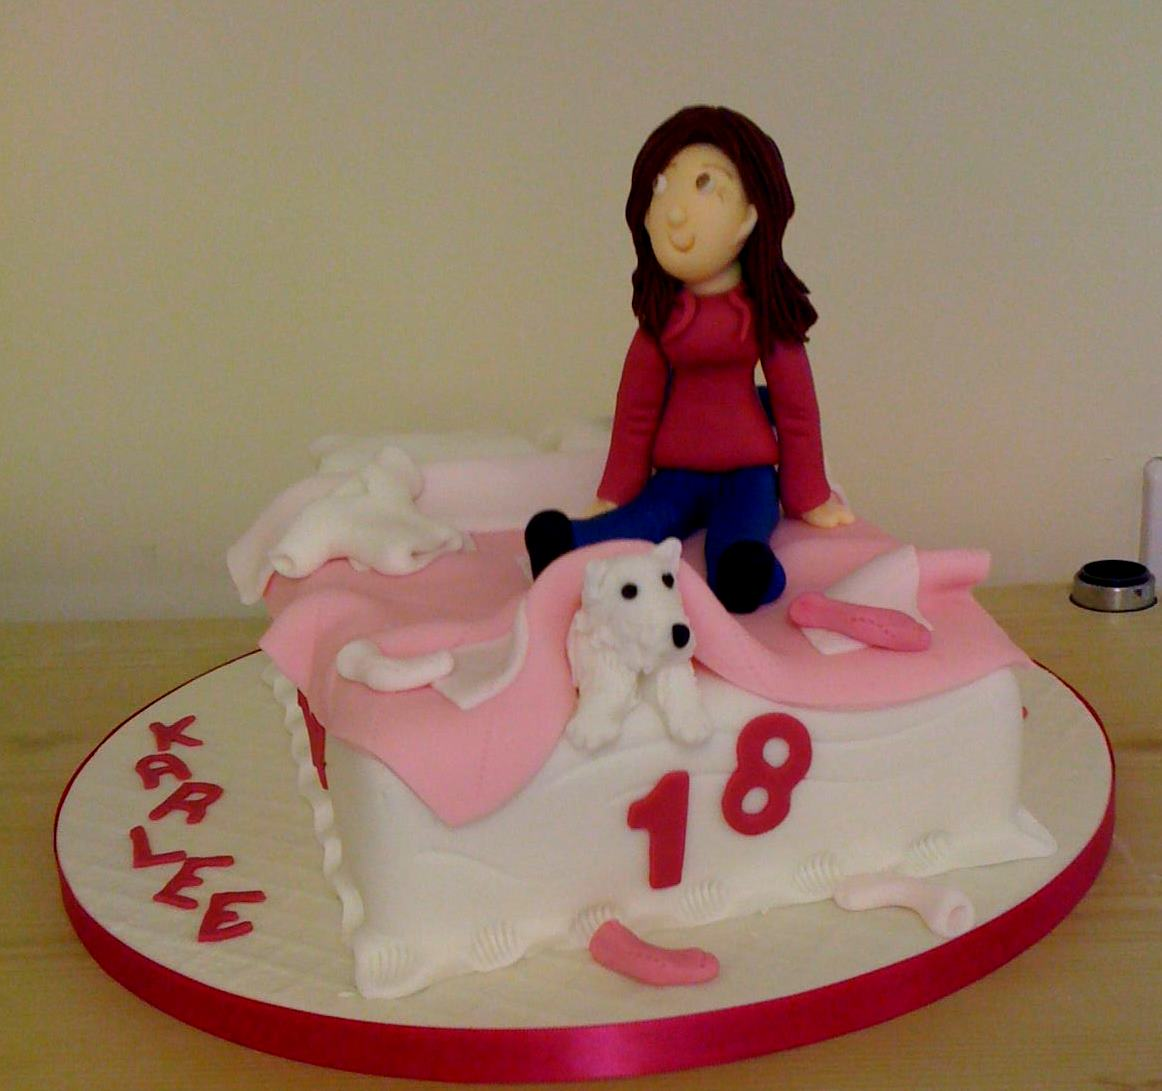 18th Birthday Cakes For Boys http://blog.jennyscakes.co.uk/413/novelty-cakes-2/